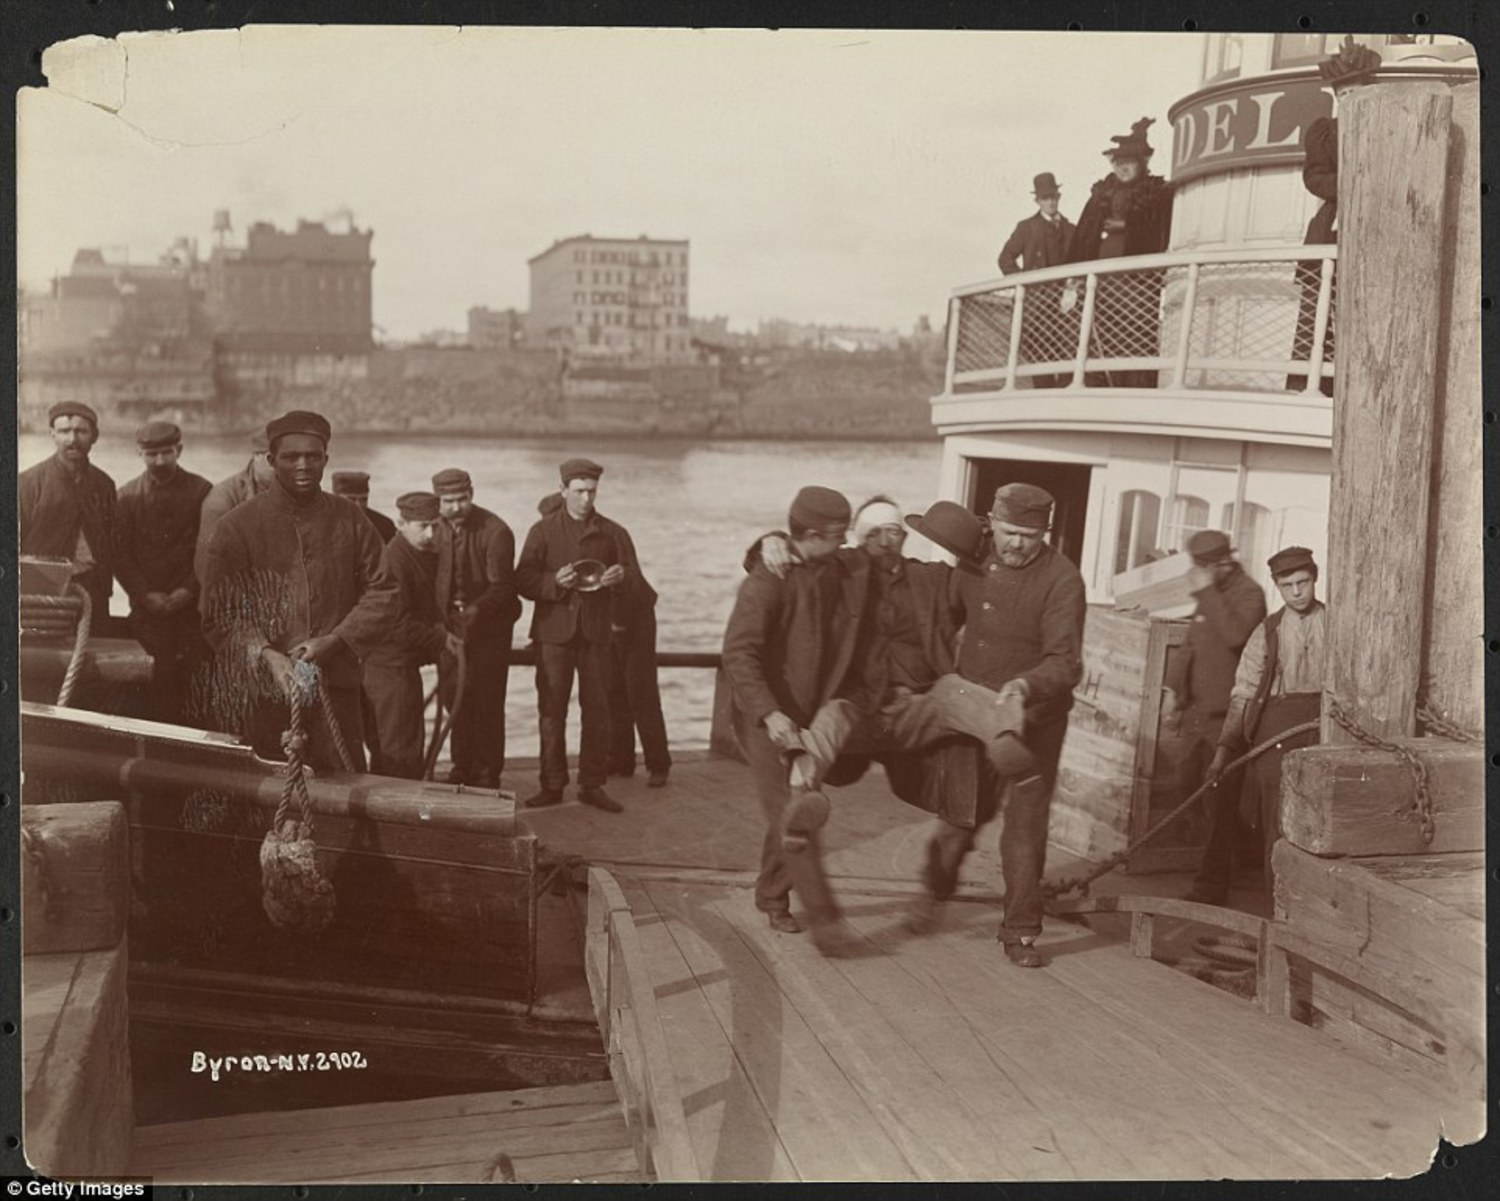 Two men carrying a patient from the ferry to the pier on Welfare Island, New York, New York, mid 1890s